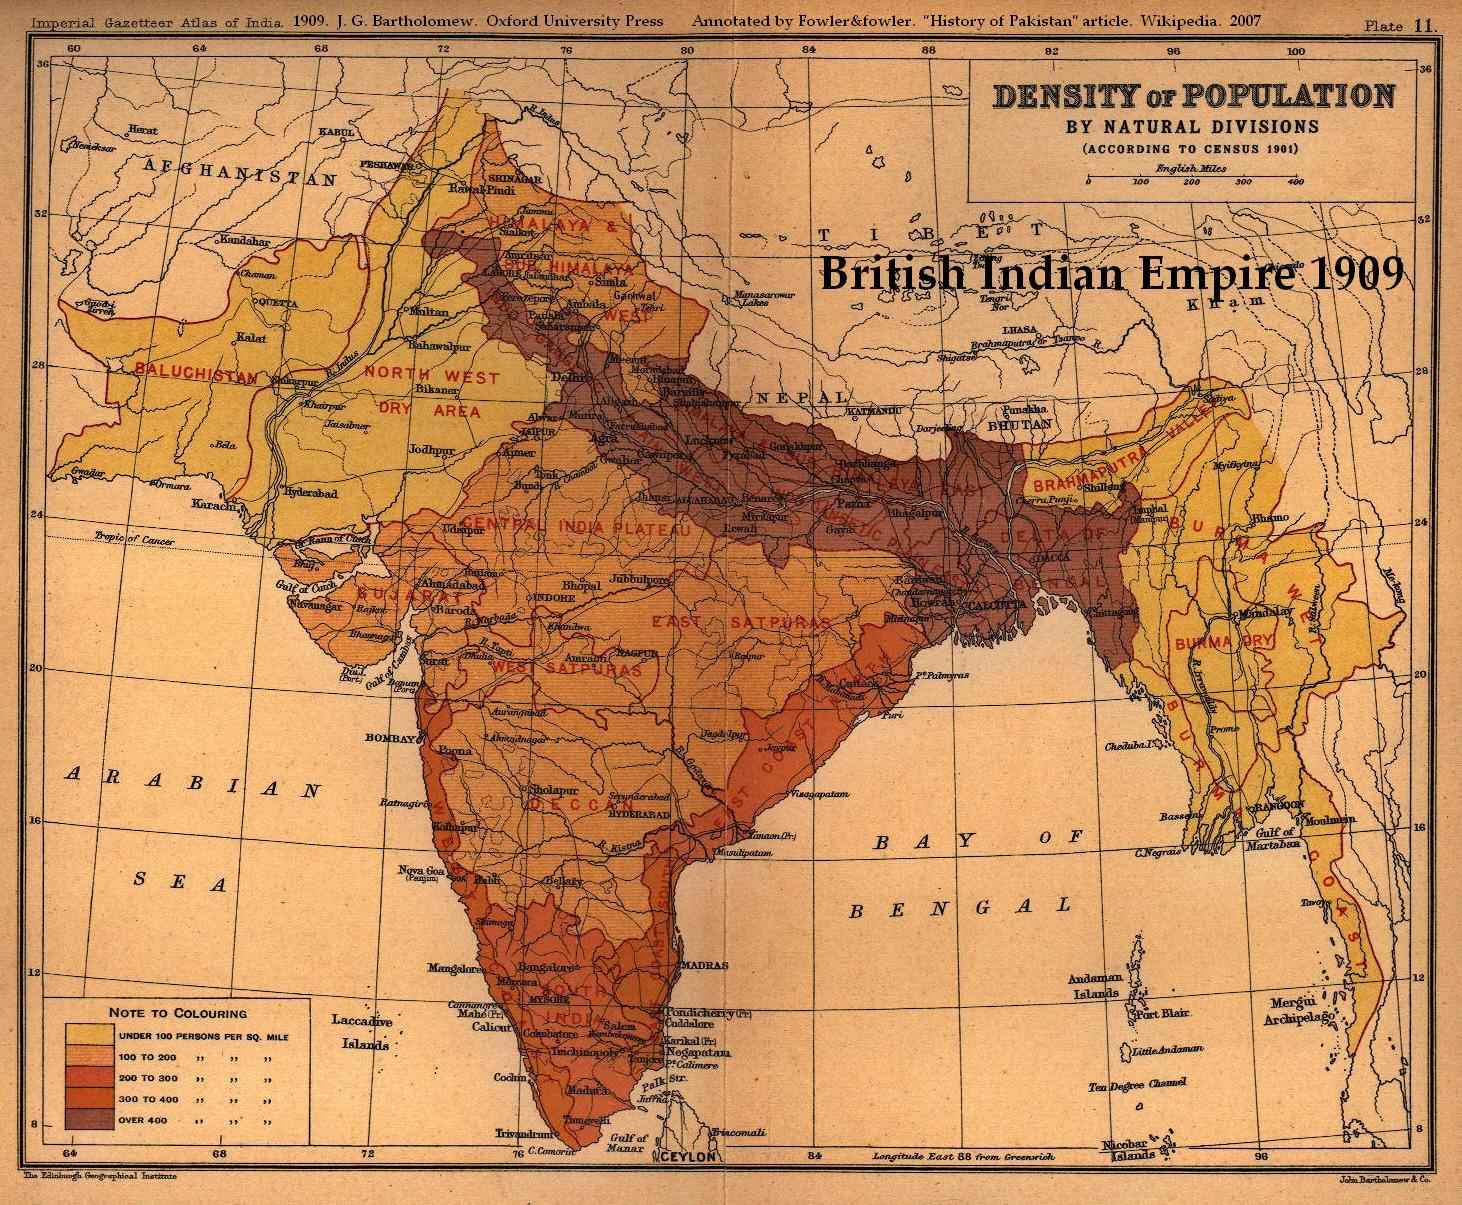 ancient india The art and culture of india in ancient times has thus multi-ethnic and multicultural features their art is defined as sacred or holy a vivid narrative compositions style conceals the.